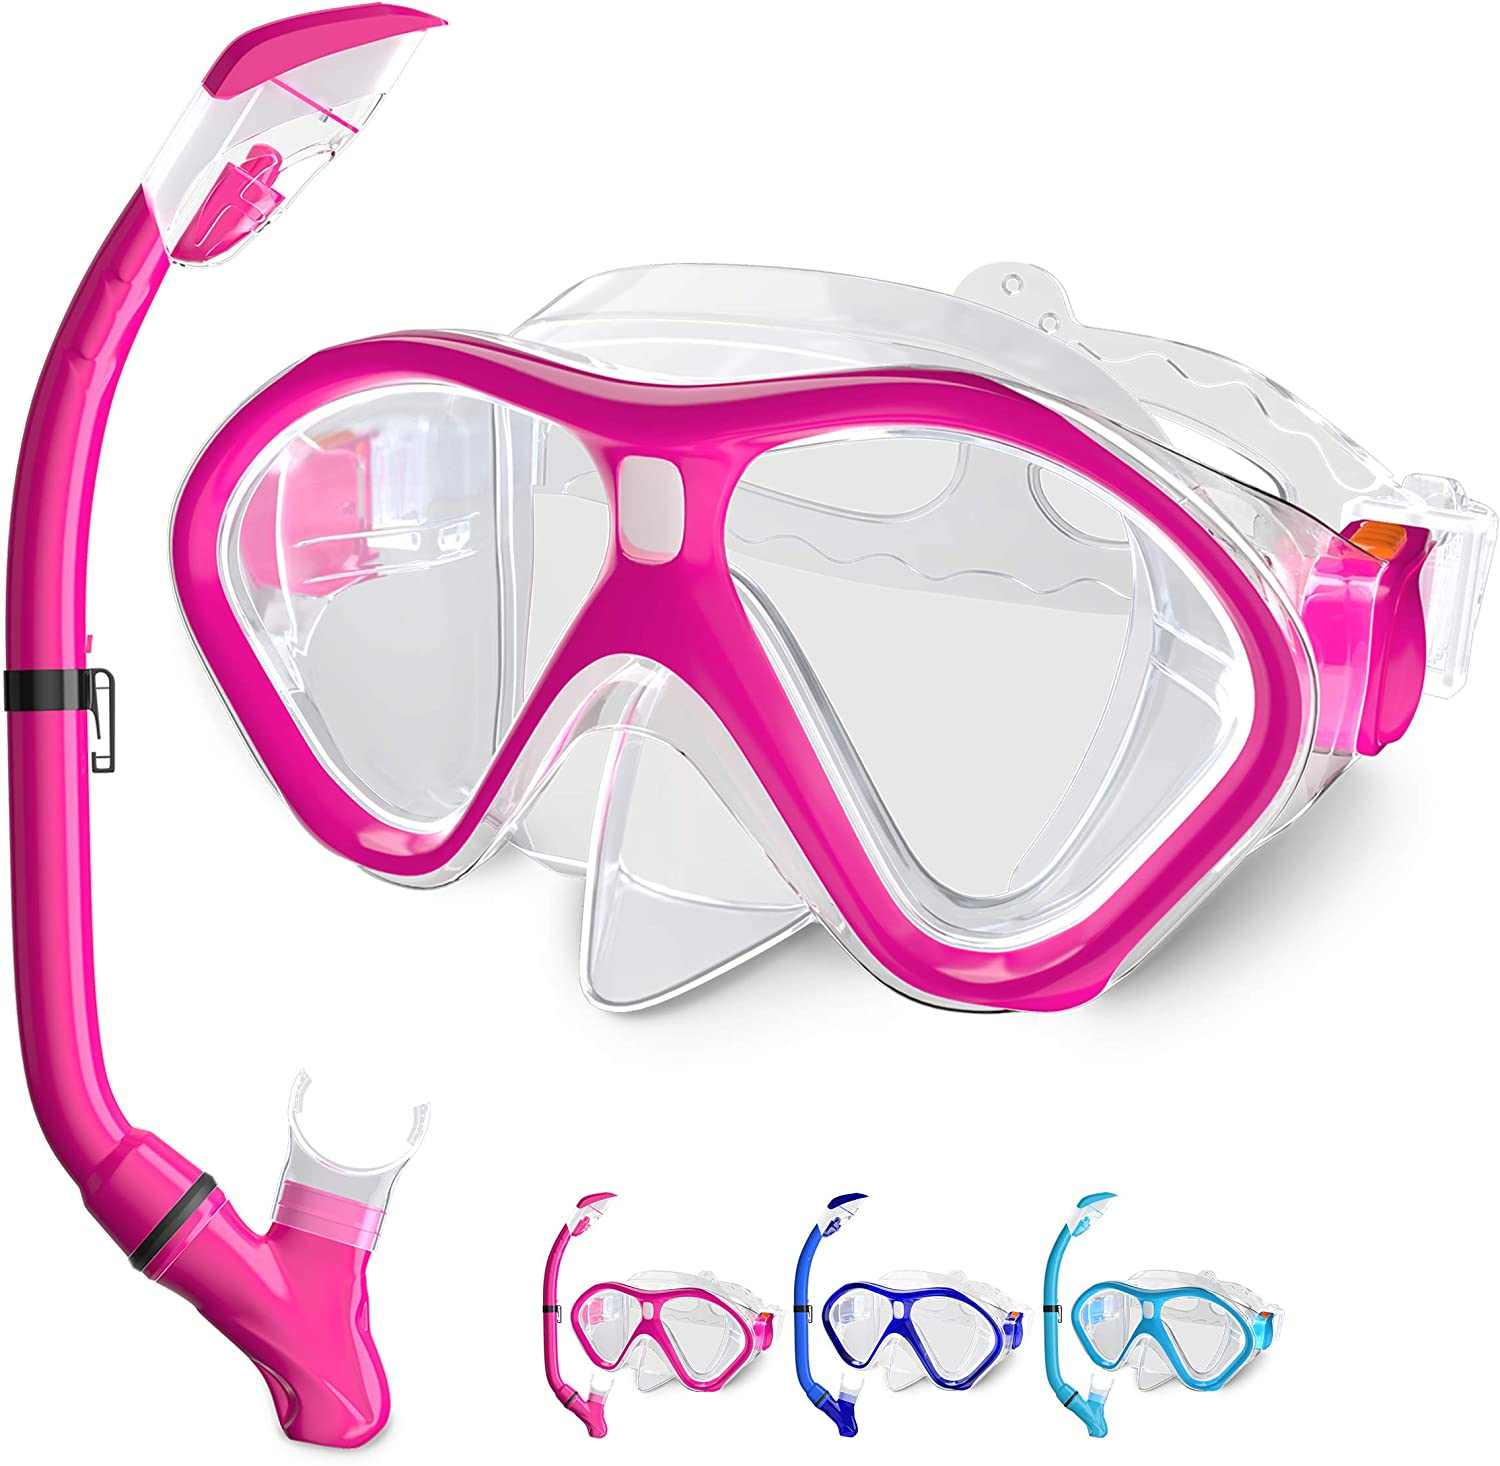 Tongtai SnorkelingGear for A surprise Max 58% OFF price is realized AdultsKids:Anti-LeakSnorkel